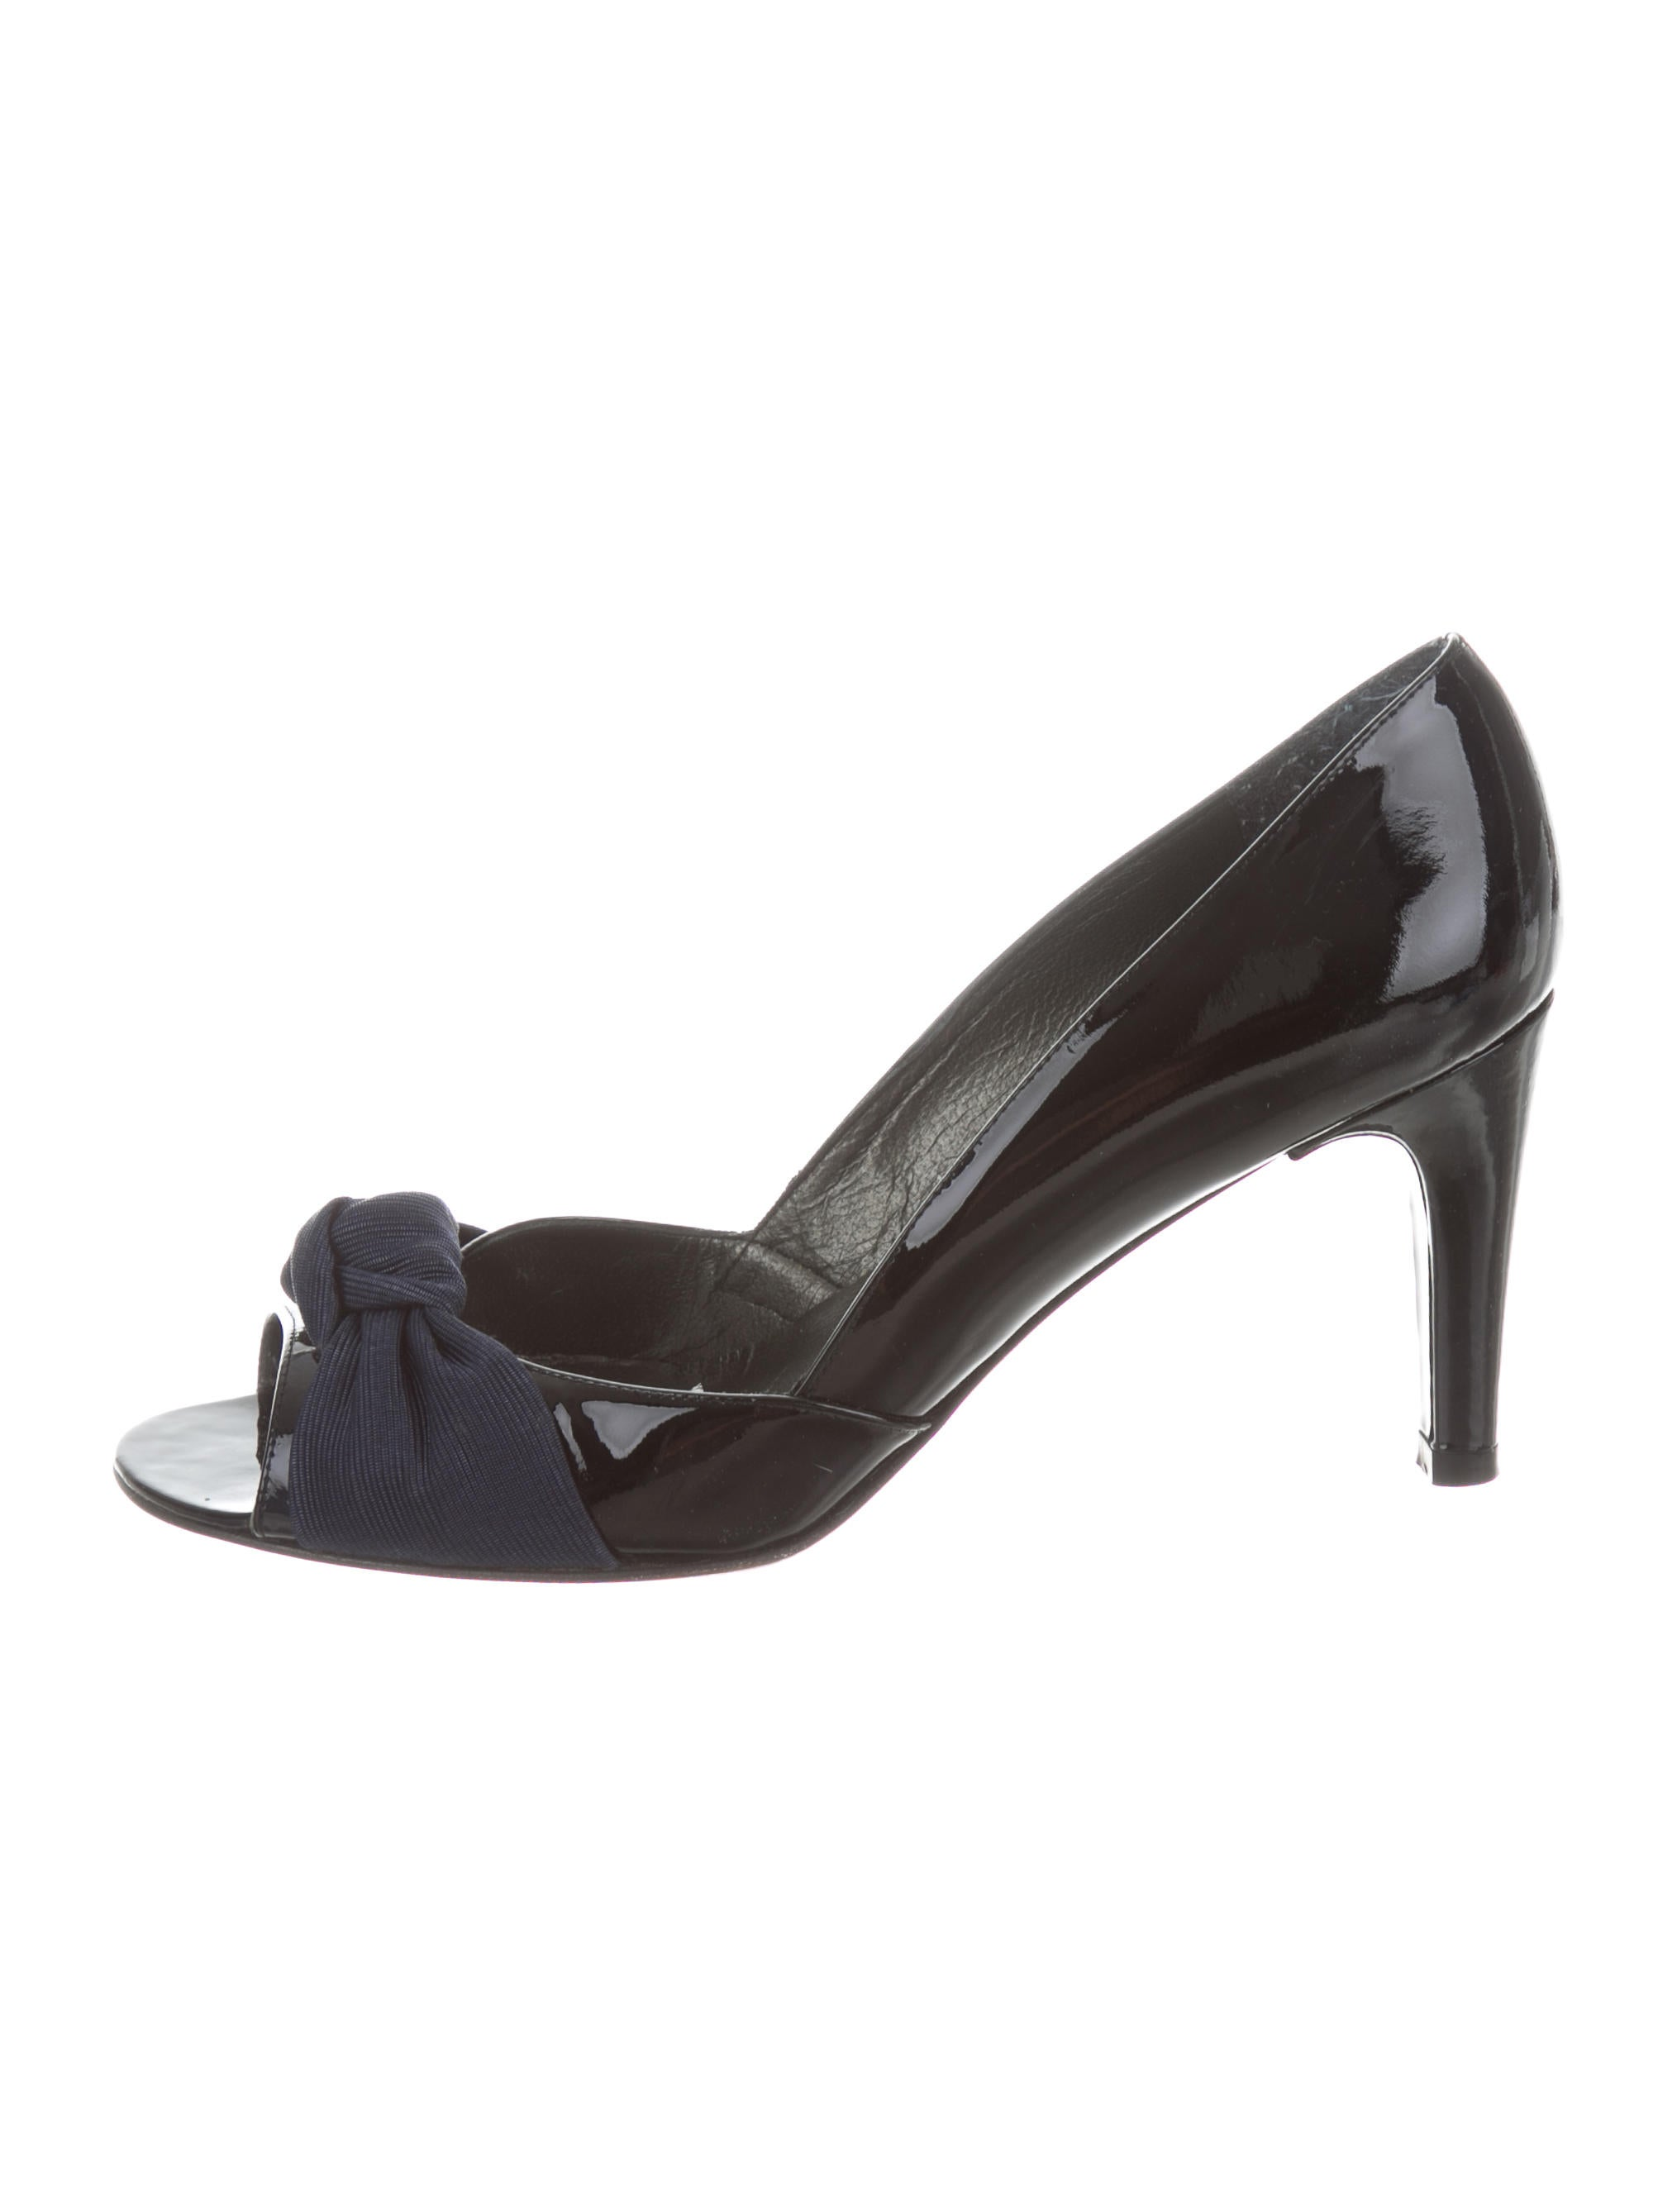 outlet sast Manchester cheap price Stuart Weitzman Knot-Accented Slingback Pumps cheap visit new sale clearance store outlet the cheapest xsWES0RP